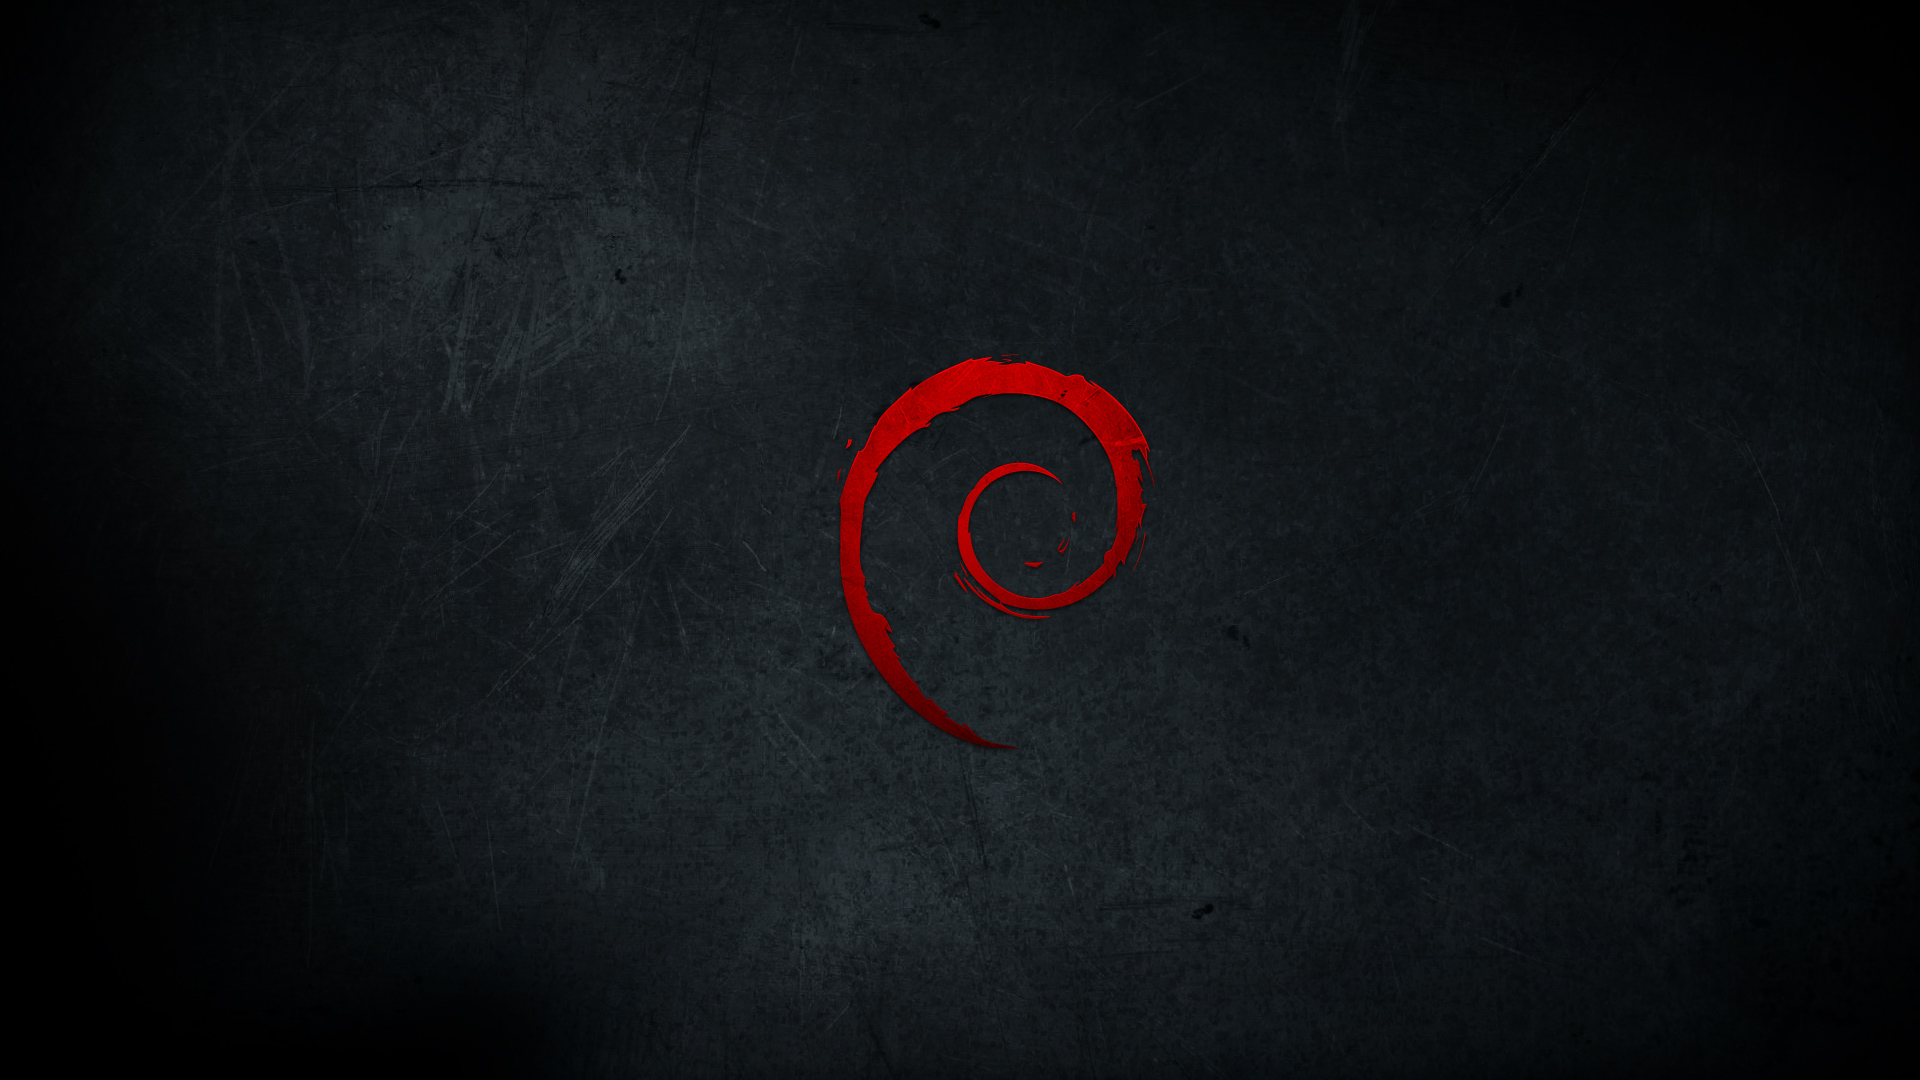 Debian Metal Wallpaper HD by malkowitch